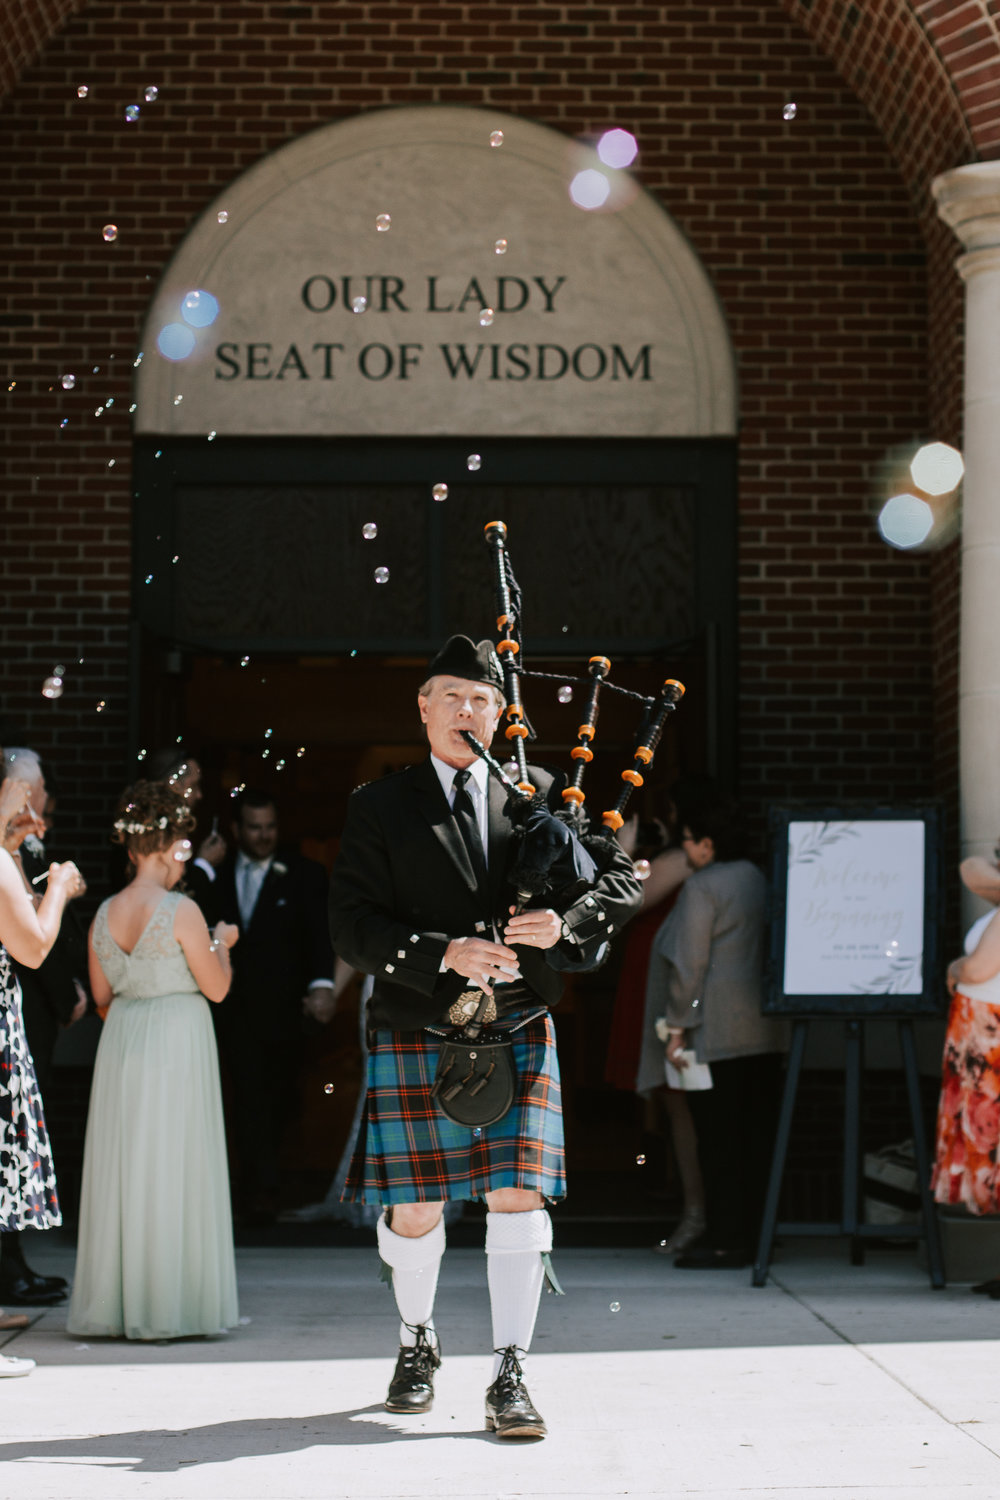 Caitlin got a Bagpiper! He was awesome.